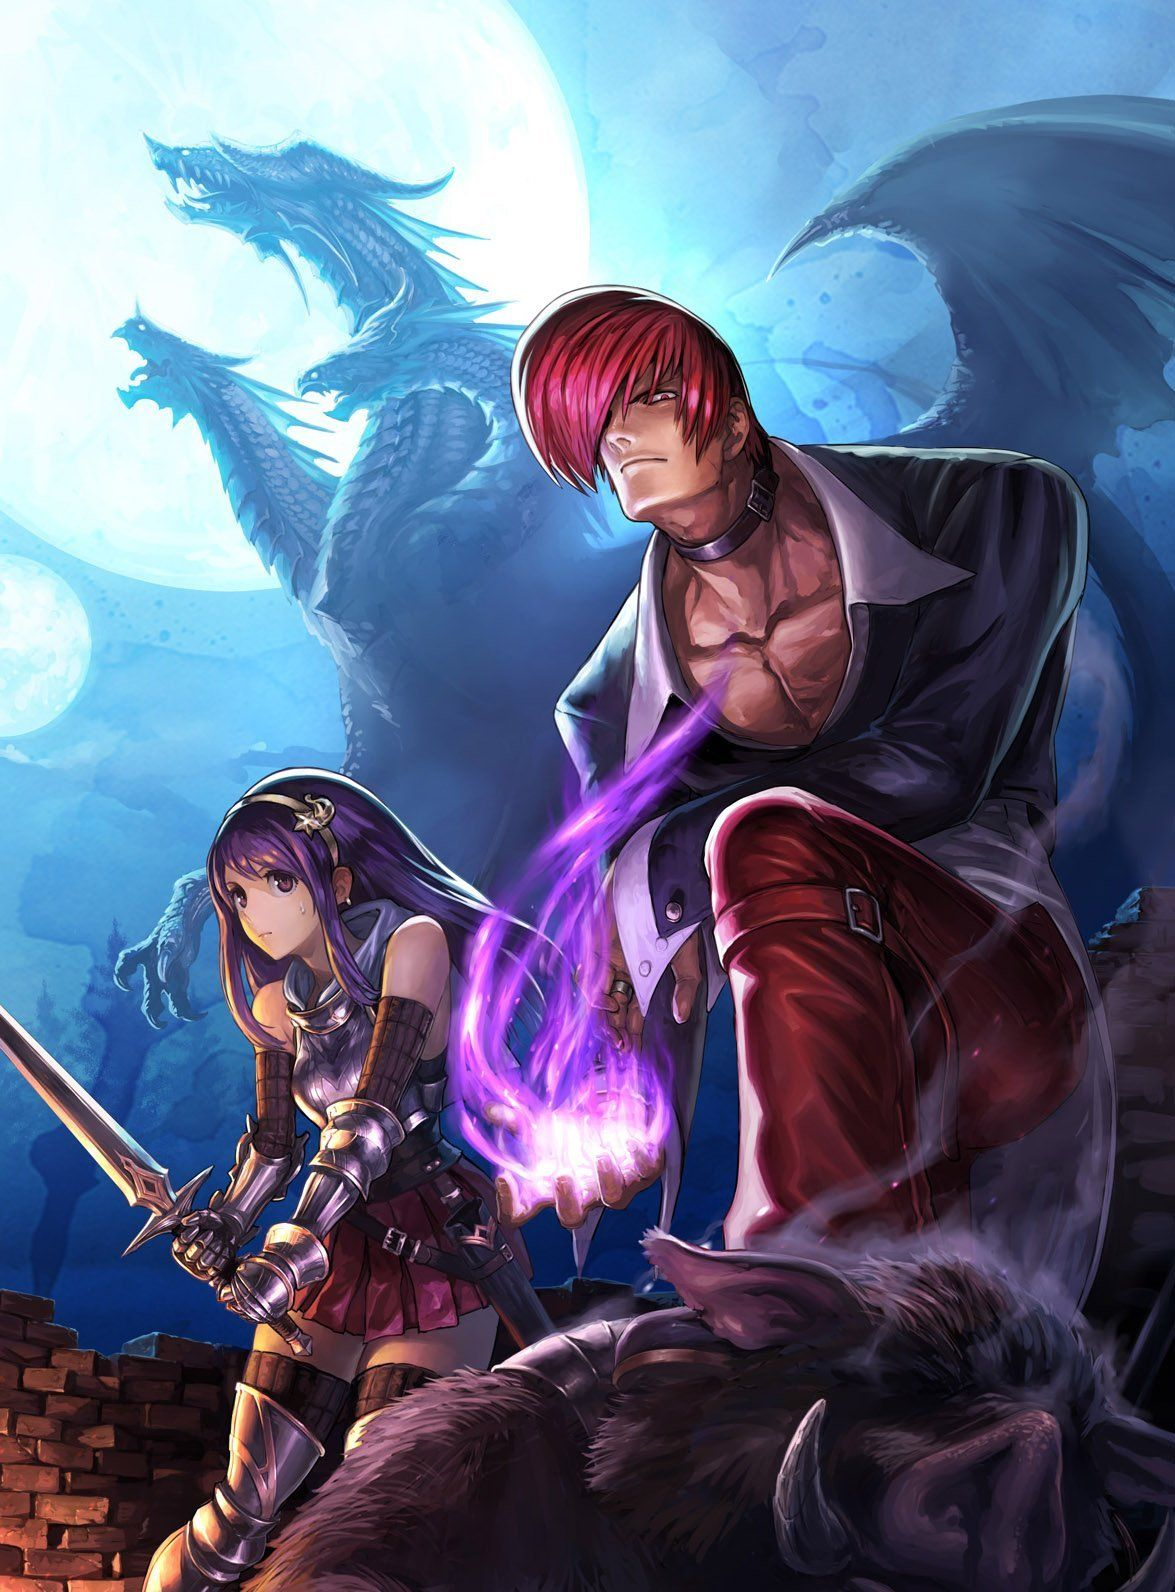 The King Of Fighters King Of Fighters Street Fighter Art Fighter